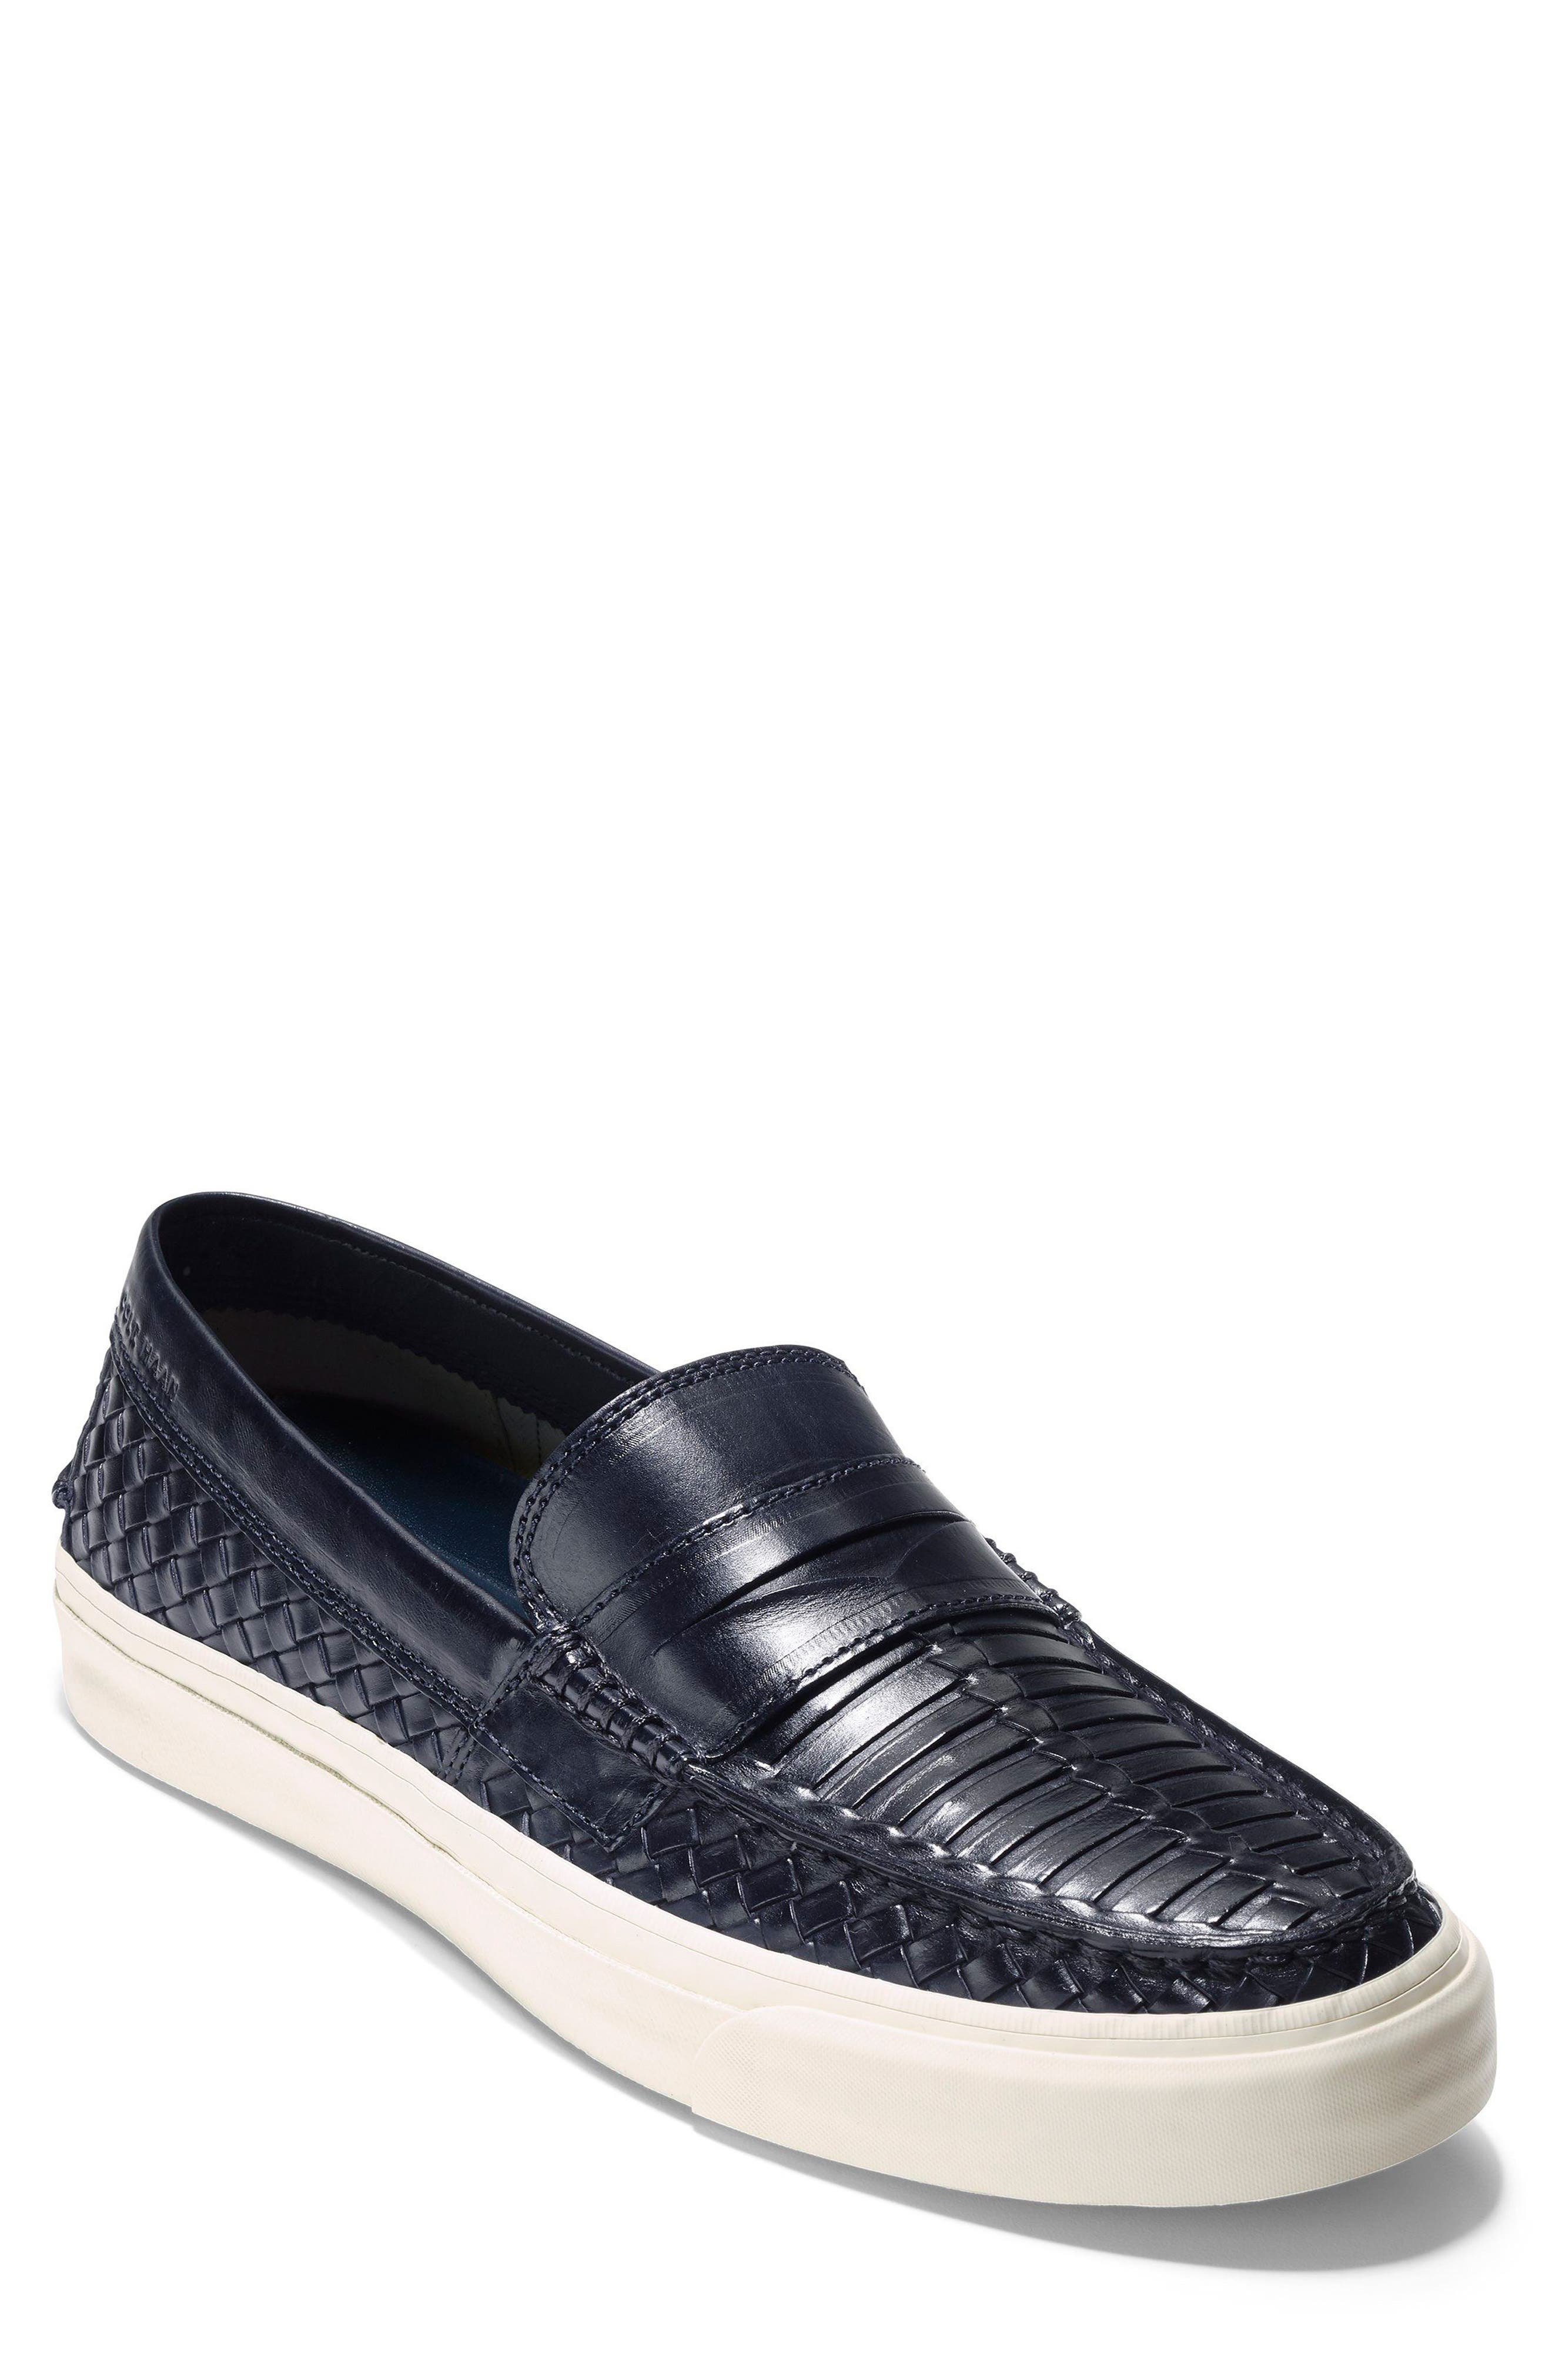 Main Image - Cole Haan Pinch Weekender LX Huarache Loafer (Men)